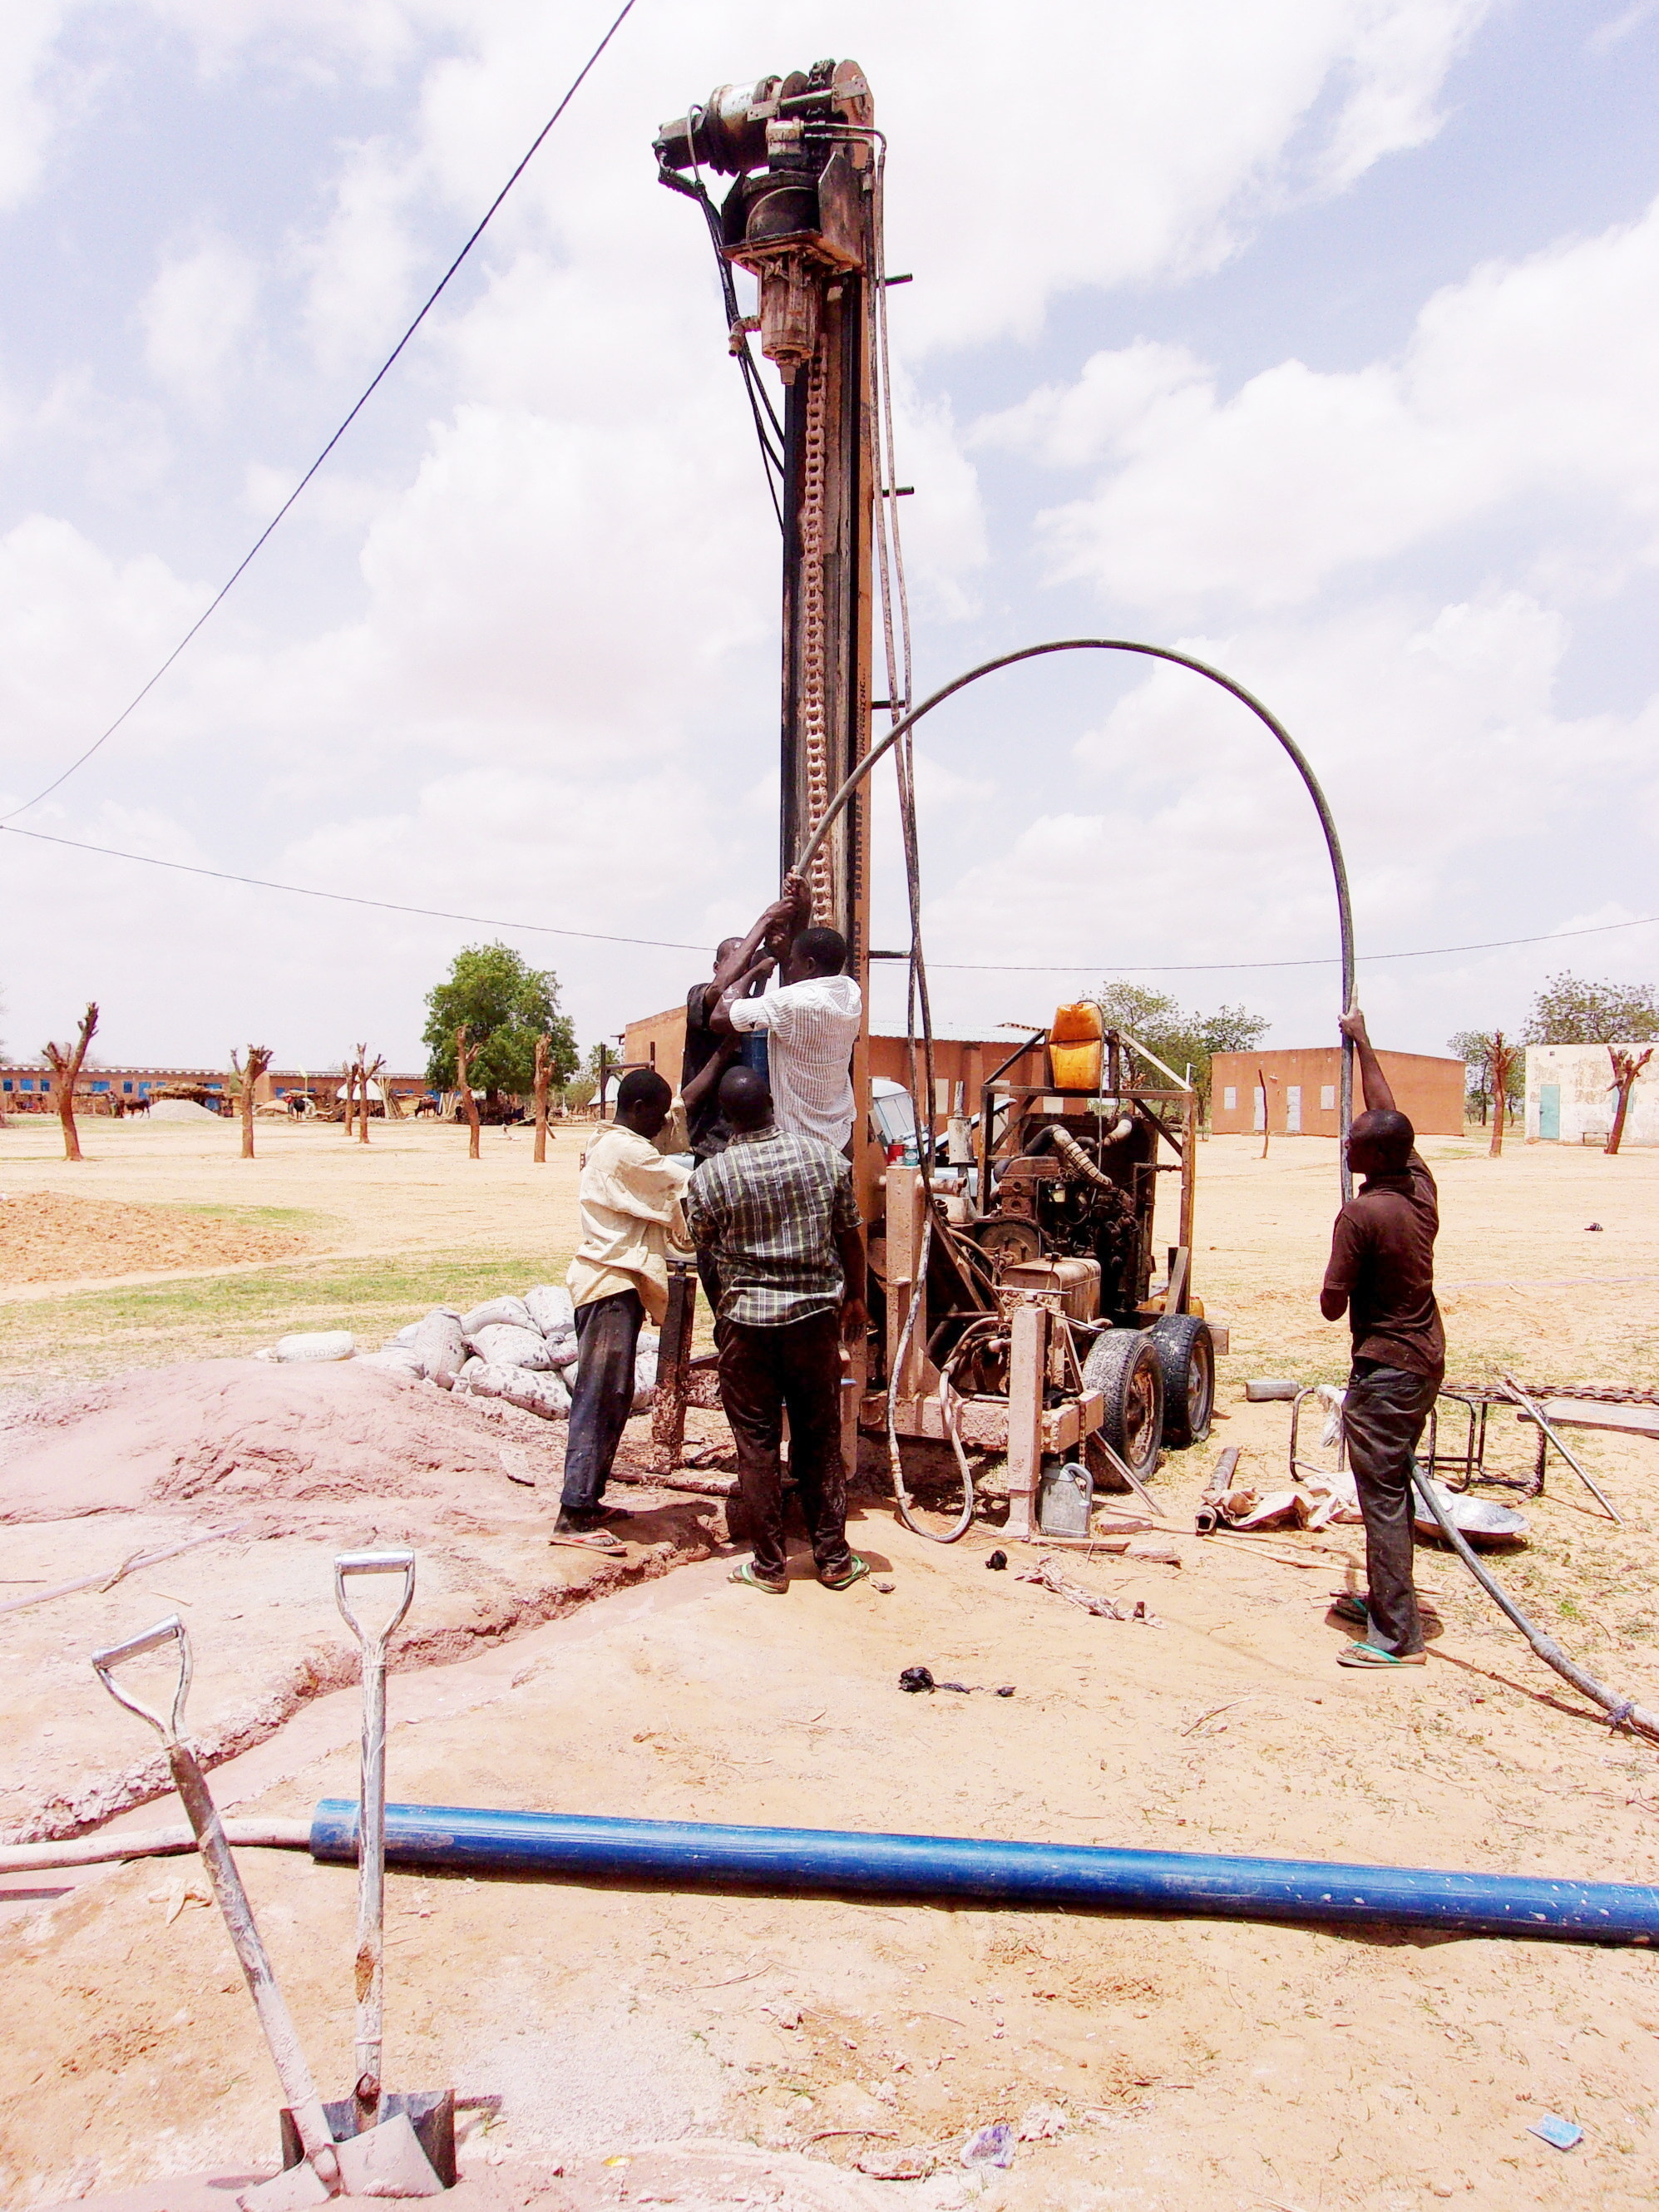 The drilling team pumping water into the well to flush out the mud at the Bible College.